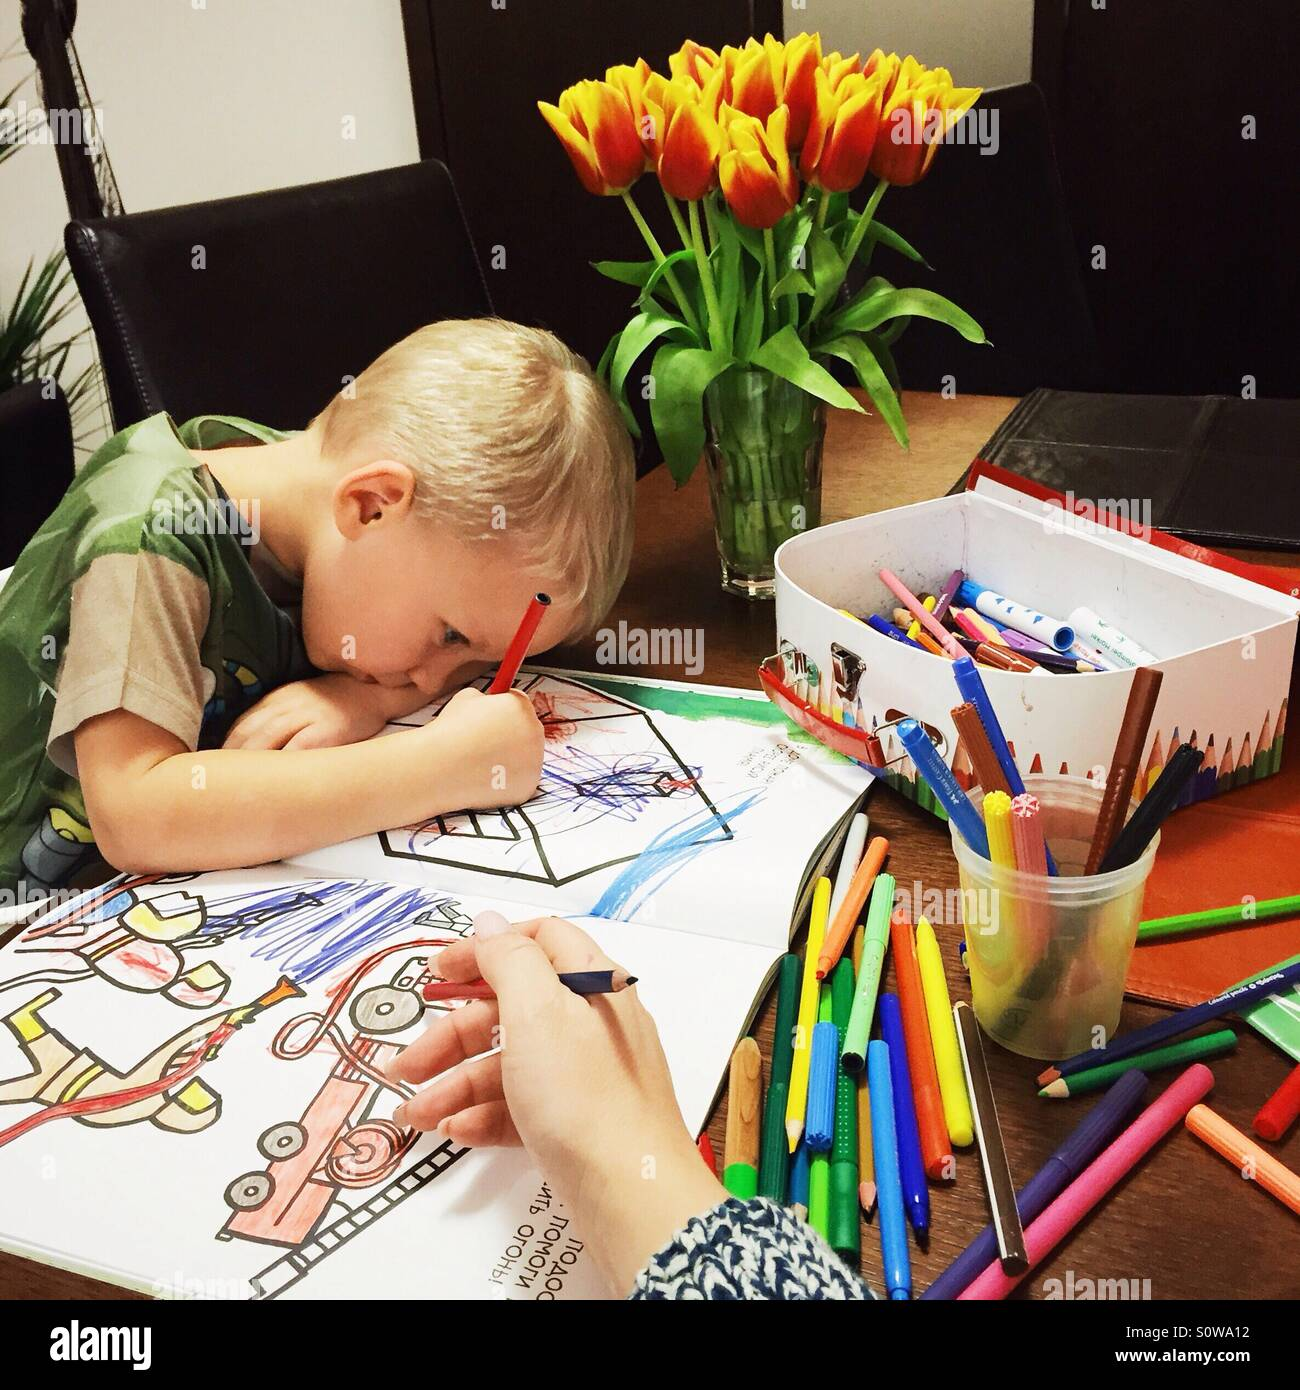 Little boy coloring a color book Stock Photo: 310343294 - Alamy